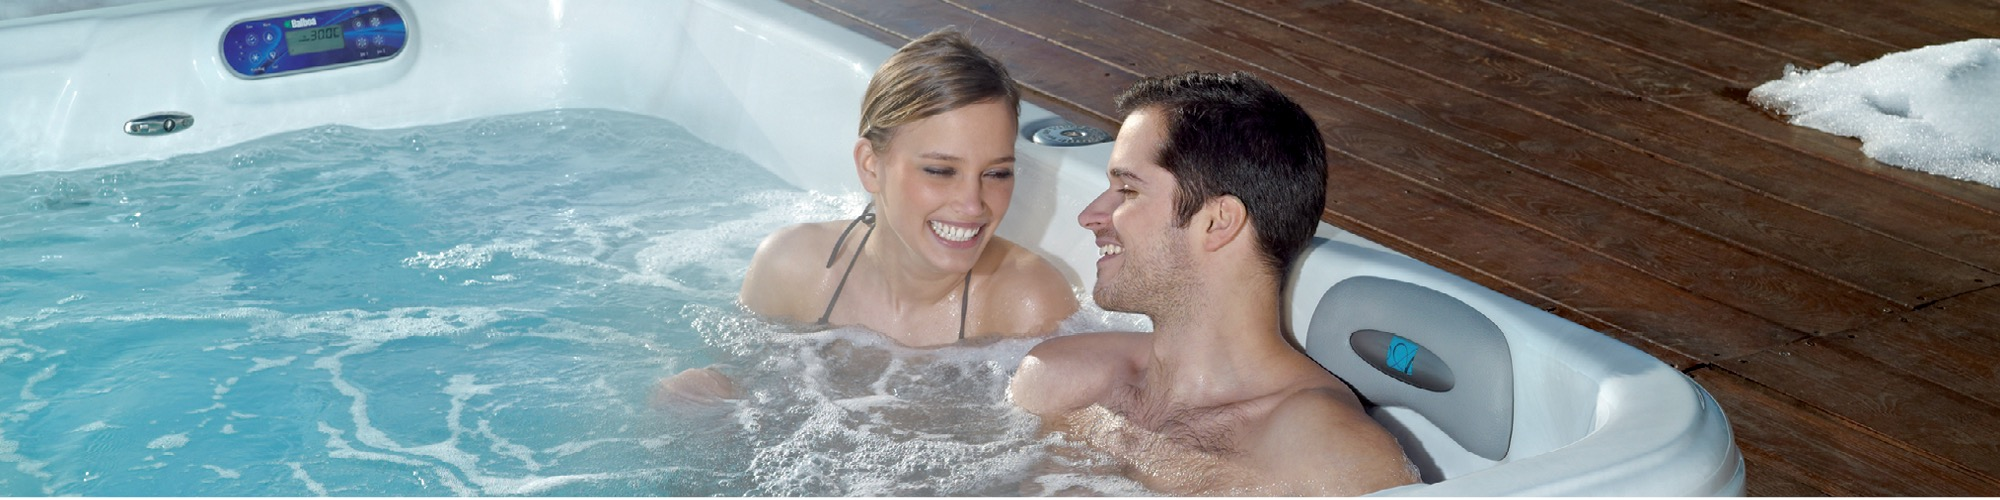 Couple enjoying a hot tub together.